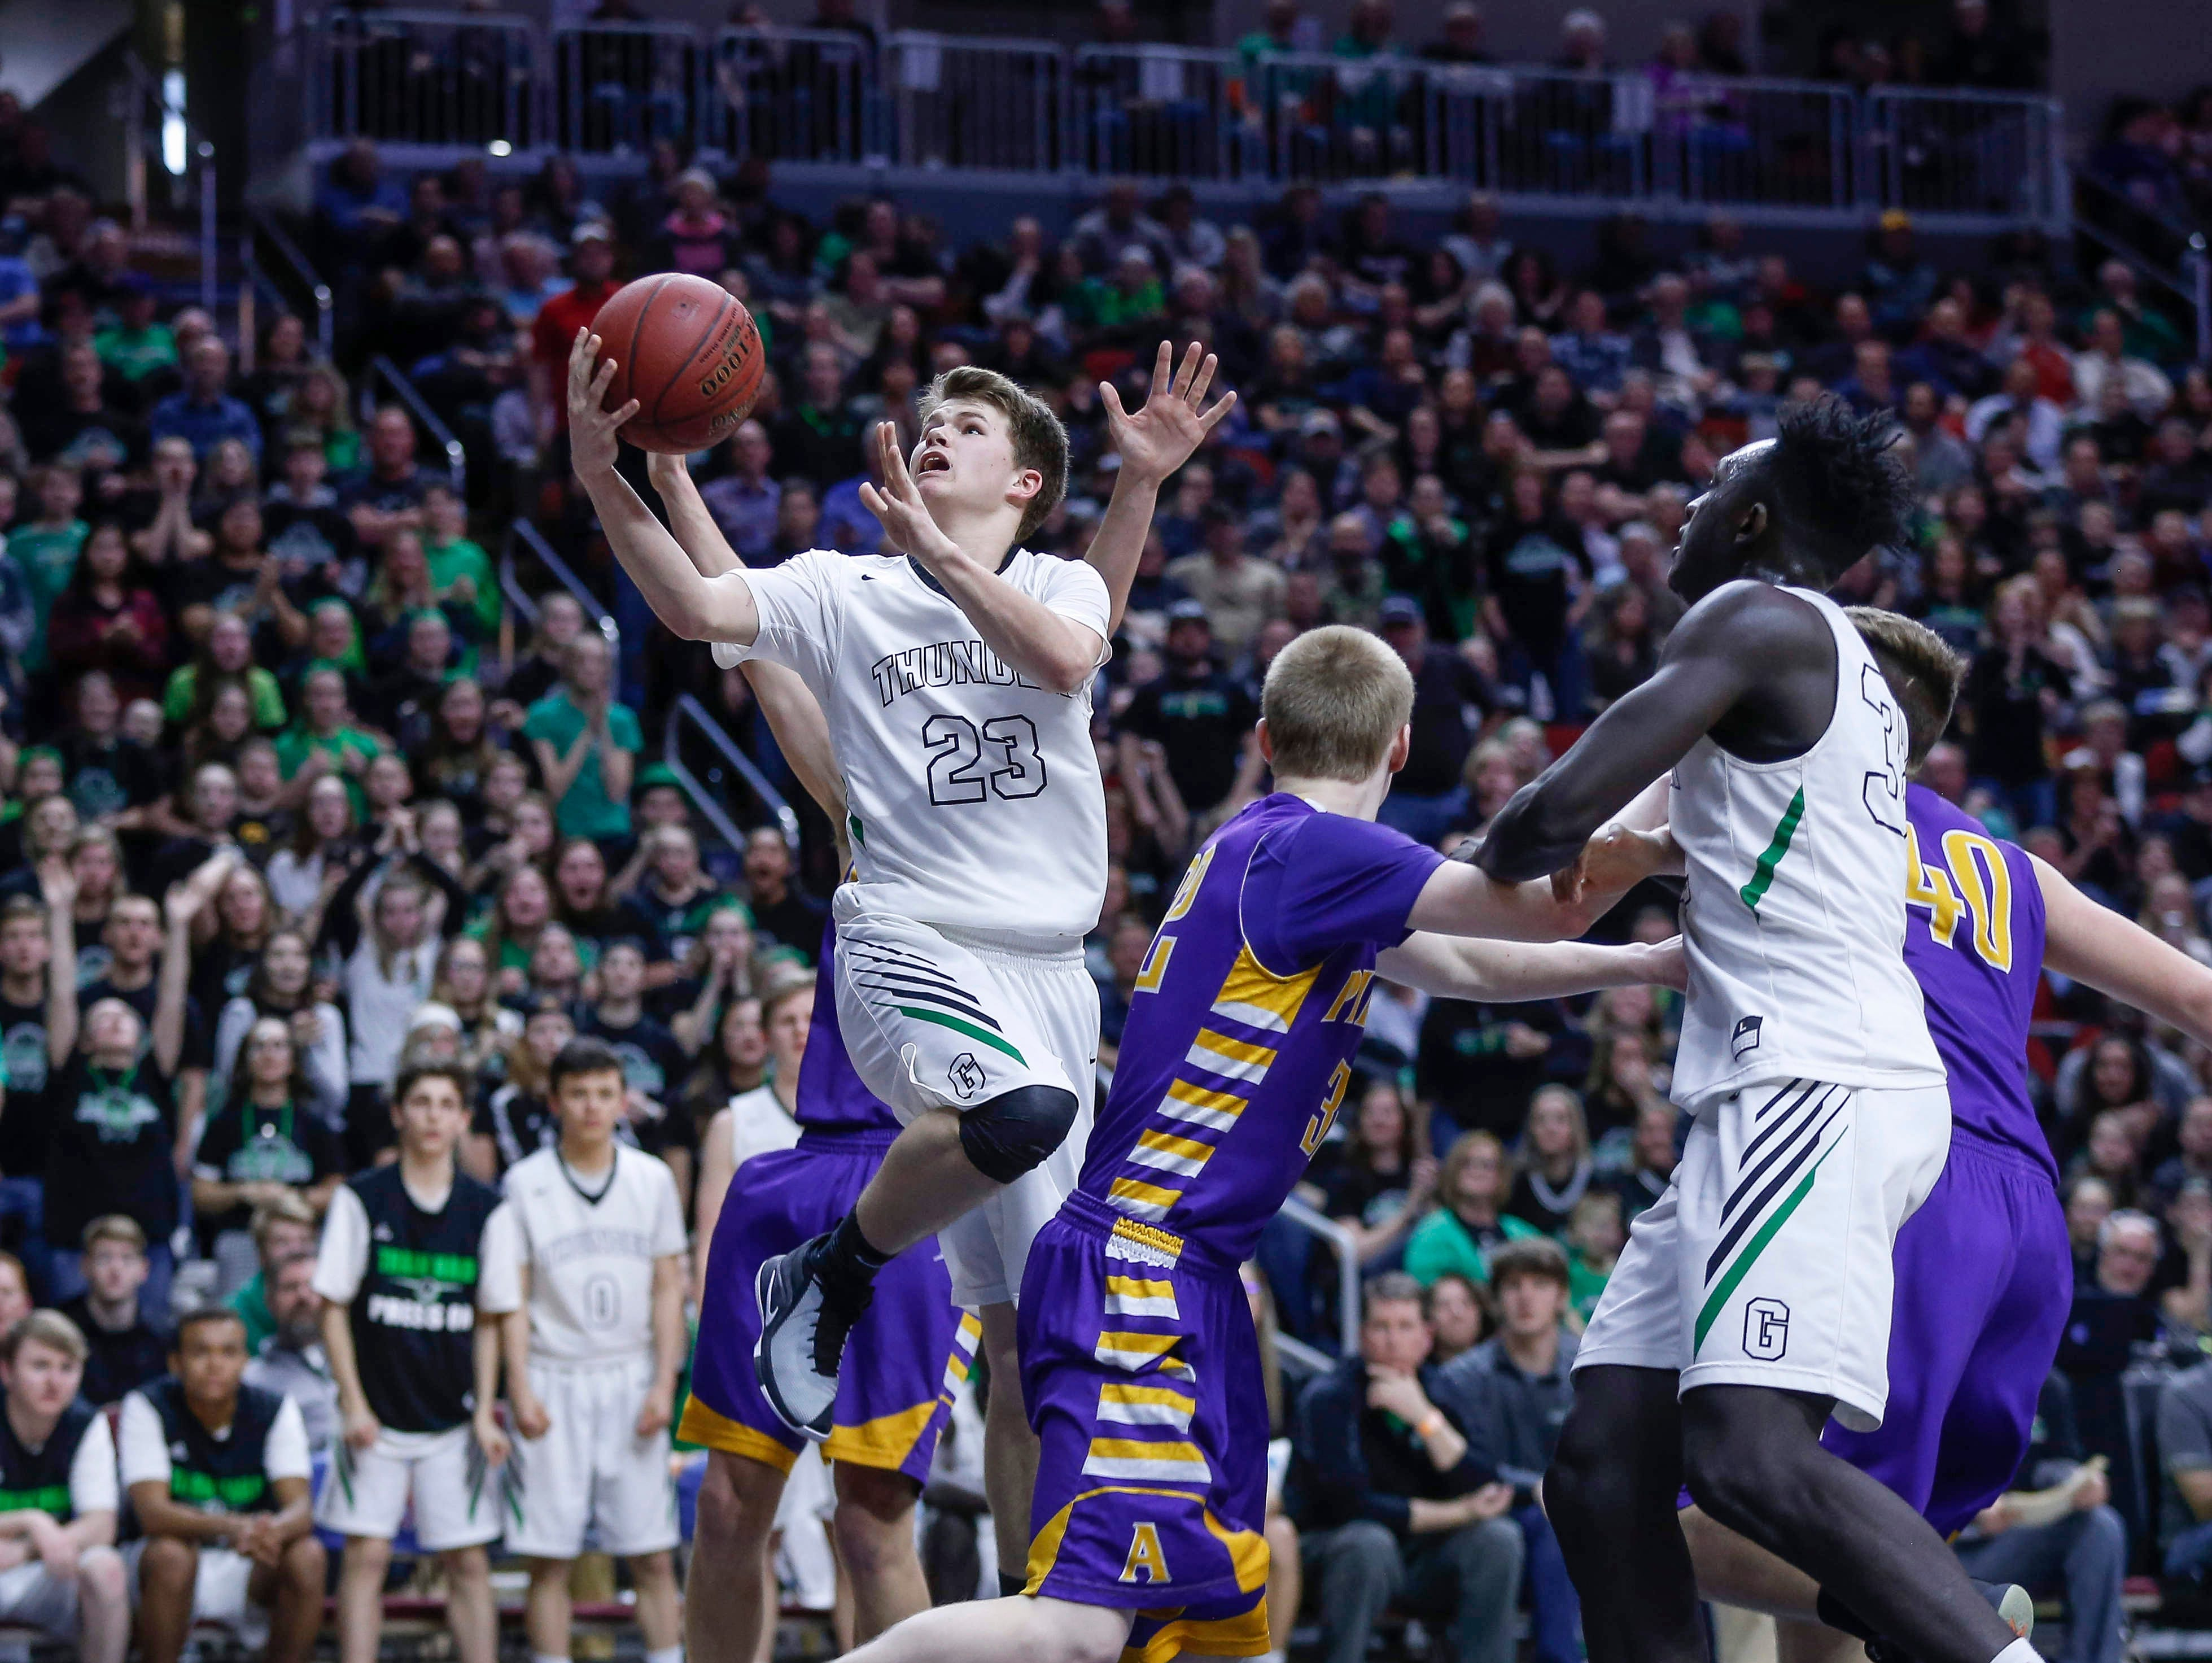 Grand View Christian senior Bryce Crabb drives up for an easy basket in the fourth quarter against Alburnett during the Class 1A boys state basketball championship game against Alburnett on Friday, March 8, 2019, at Wells Fargo Arena in Des Moines.